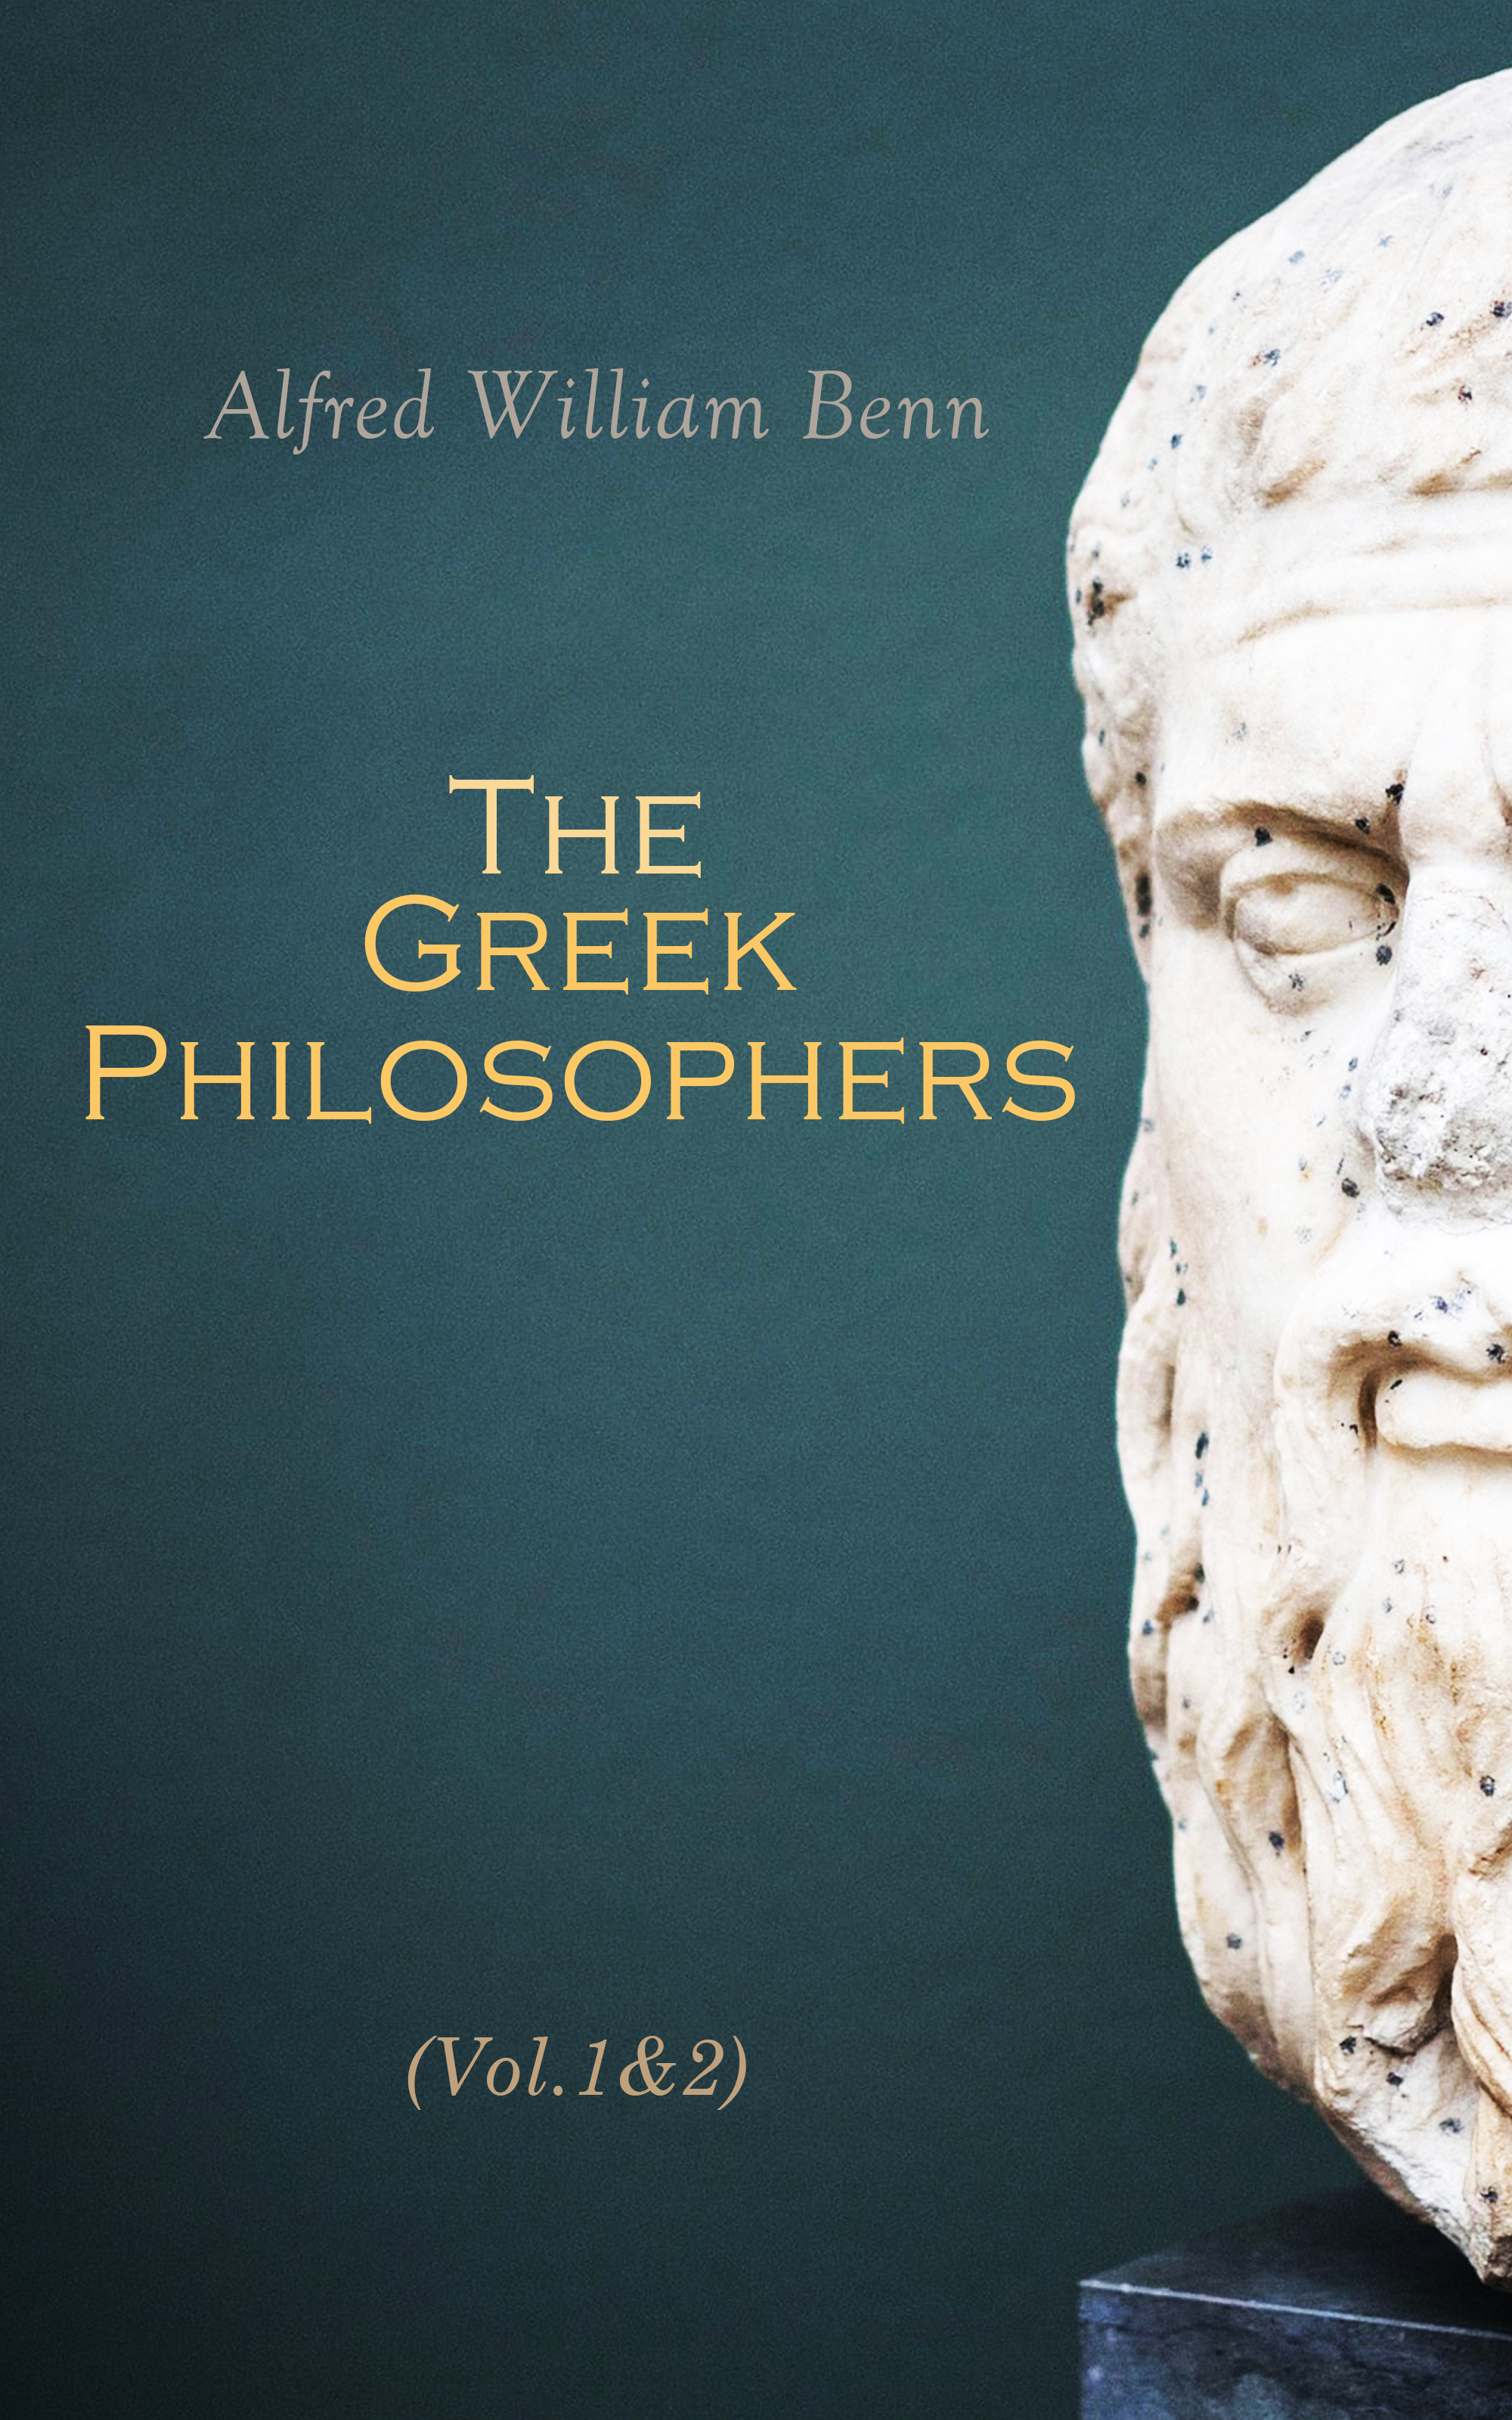 Alfred William Benn The Greek Philosophers (Vol.1&2)